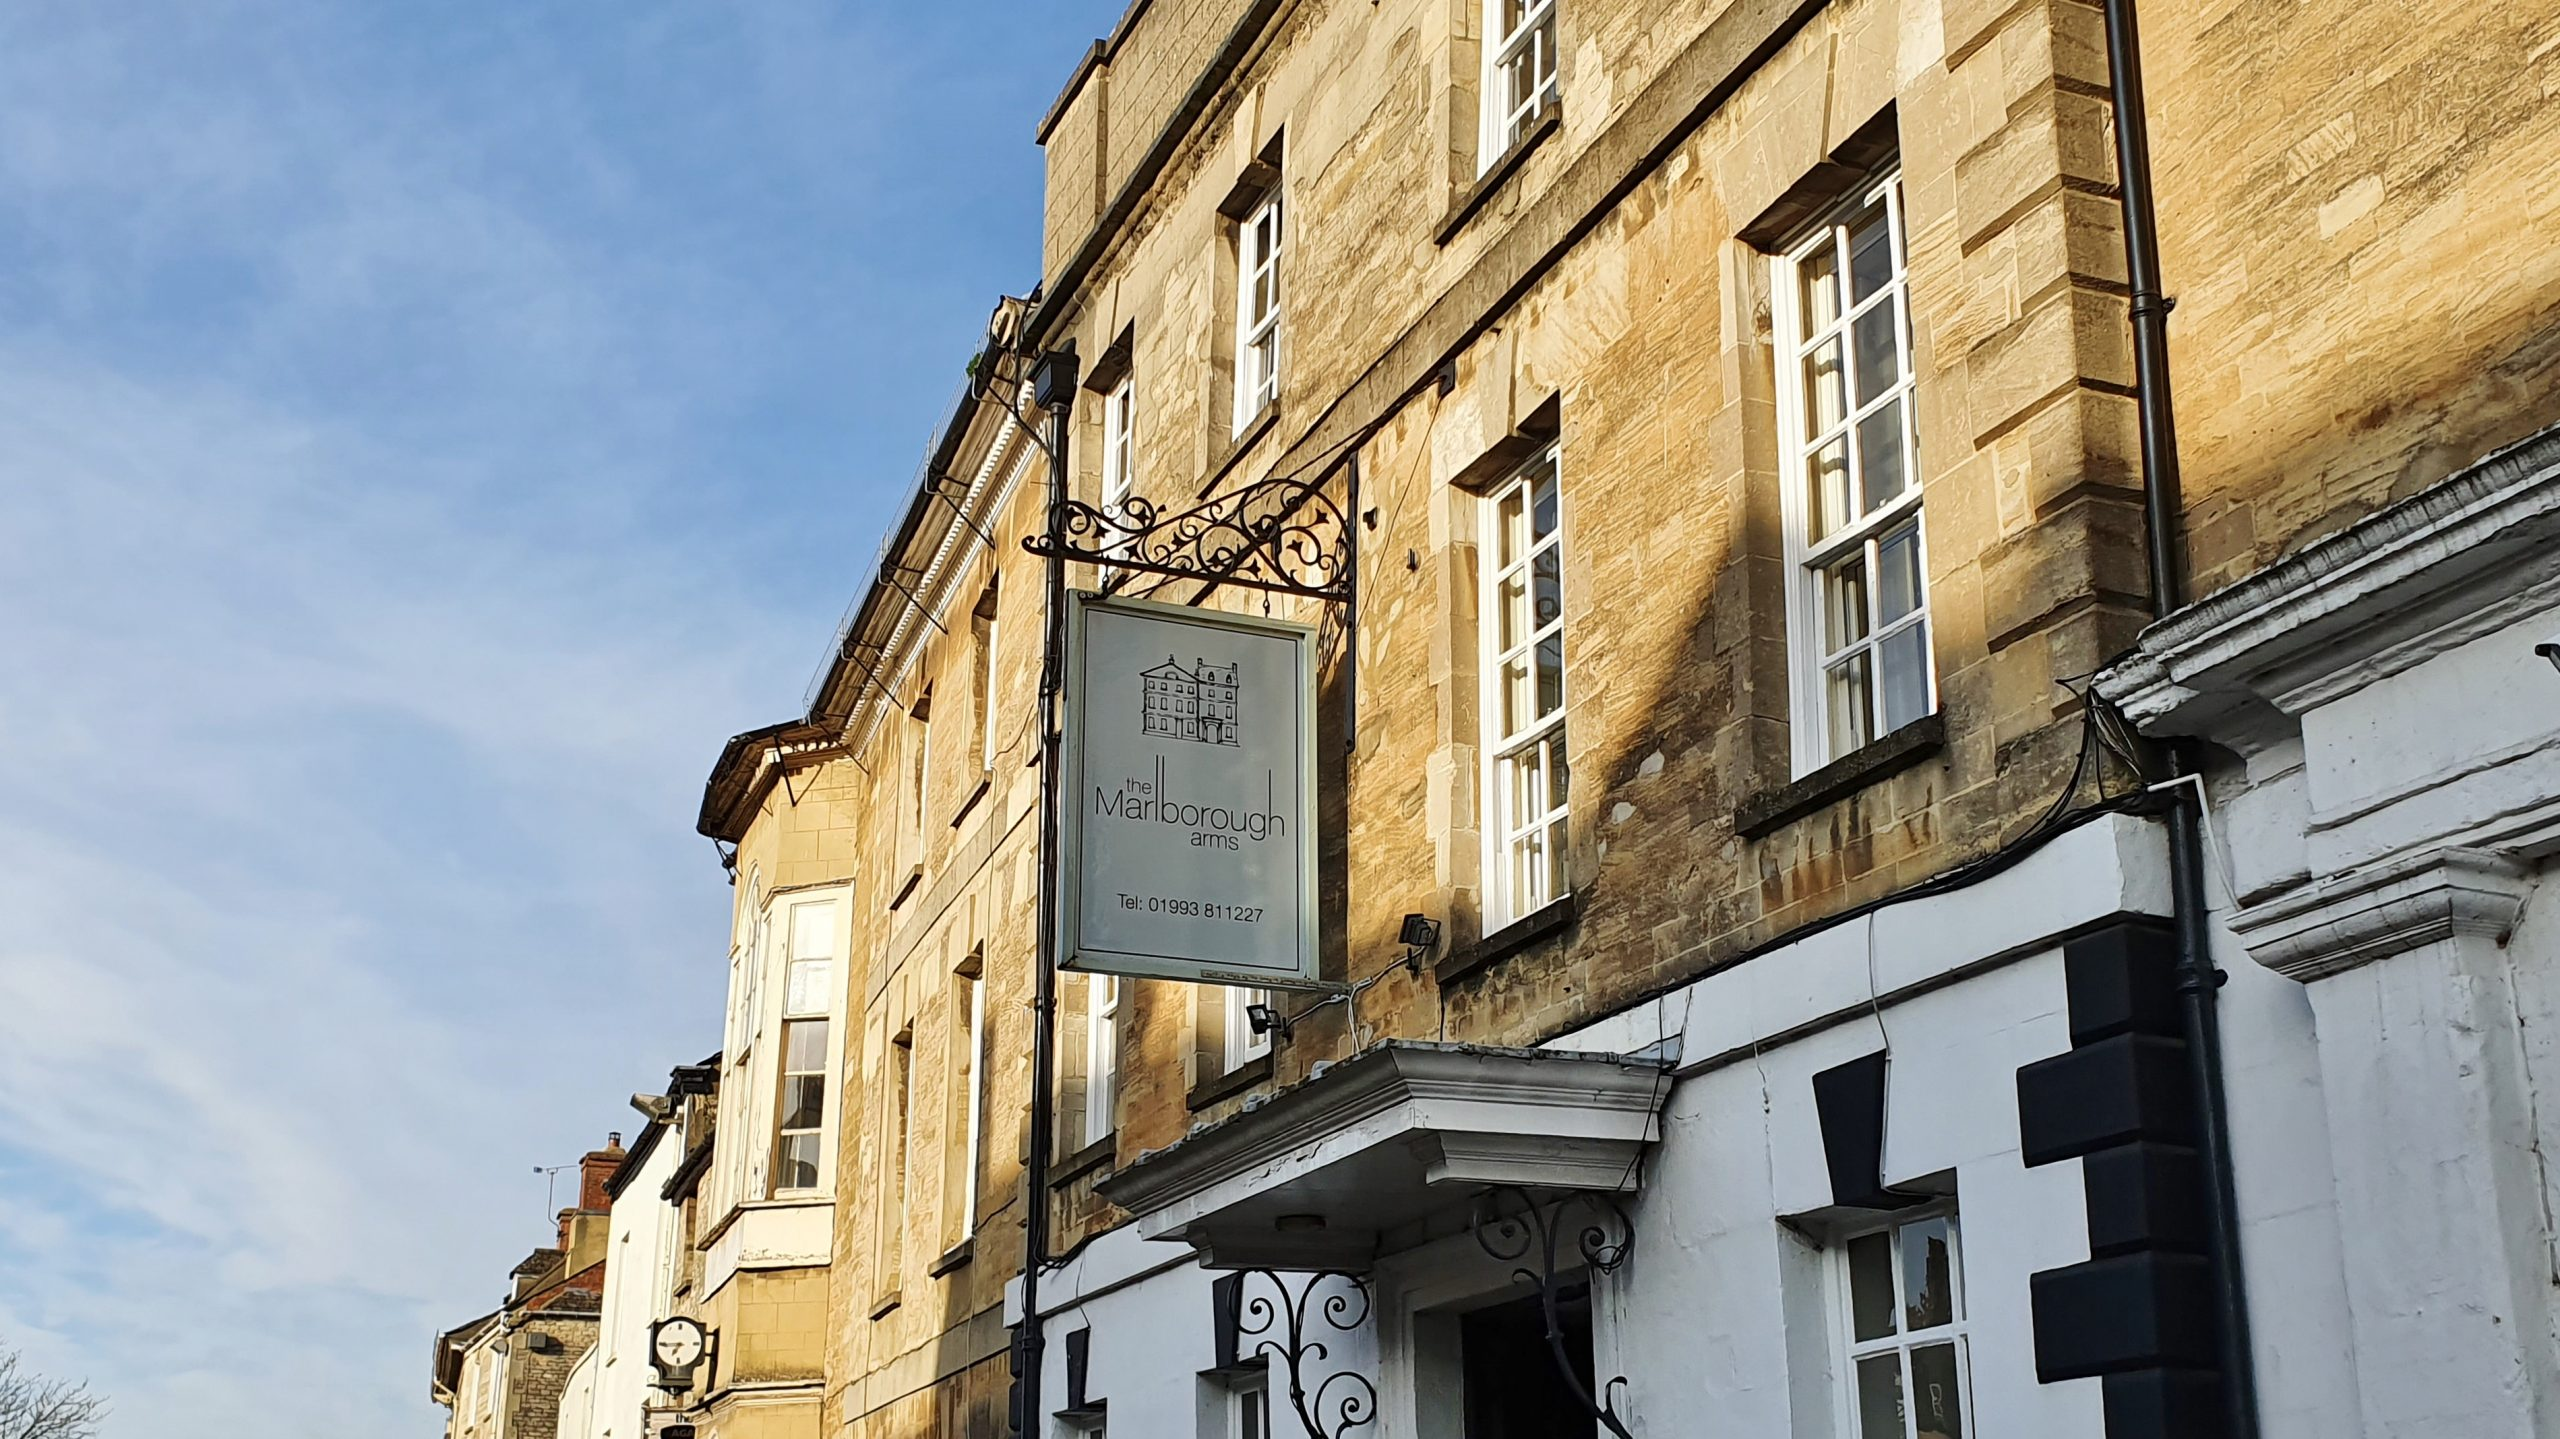 Travel: The Marlborough Arms Hotel, Woodstock